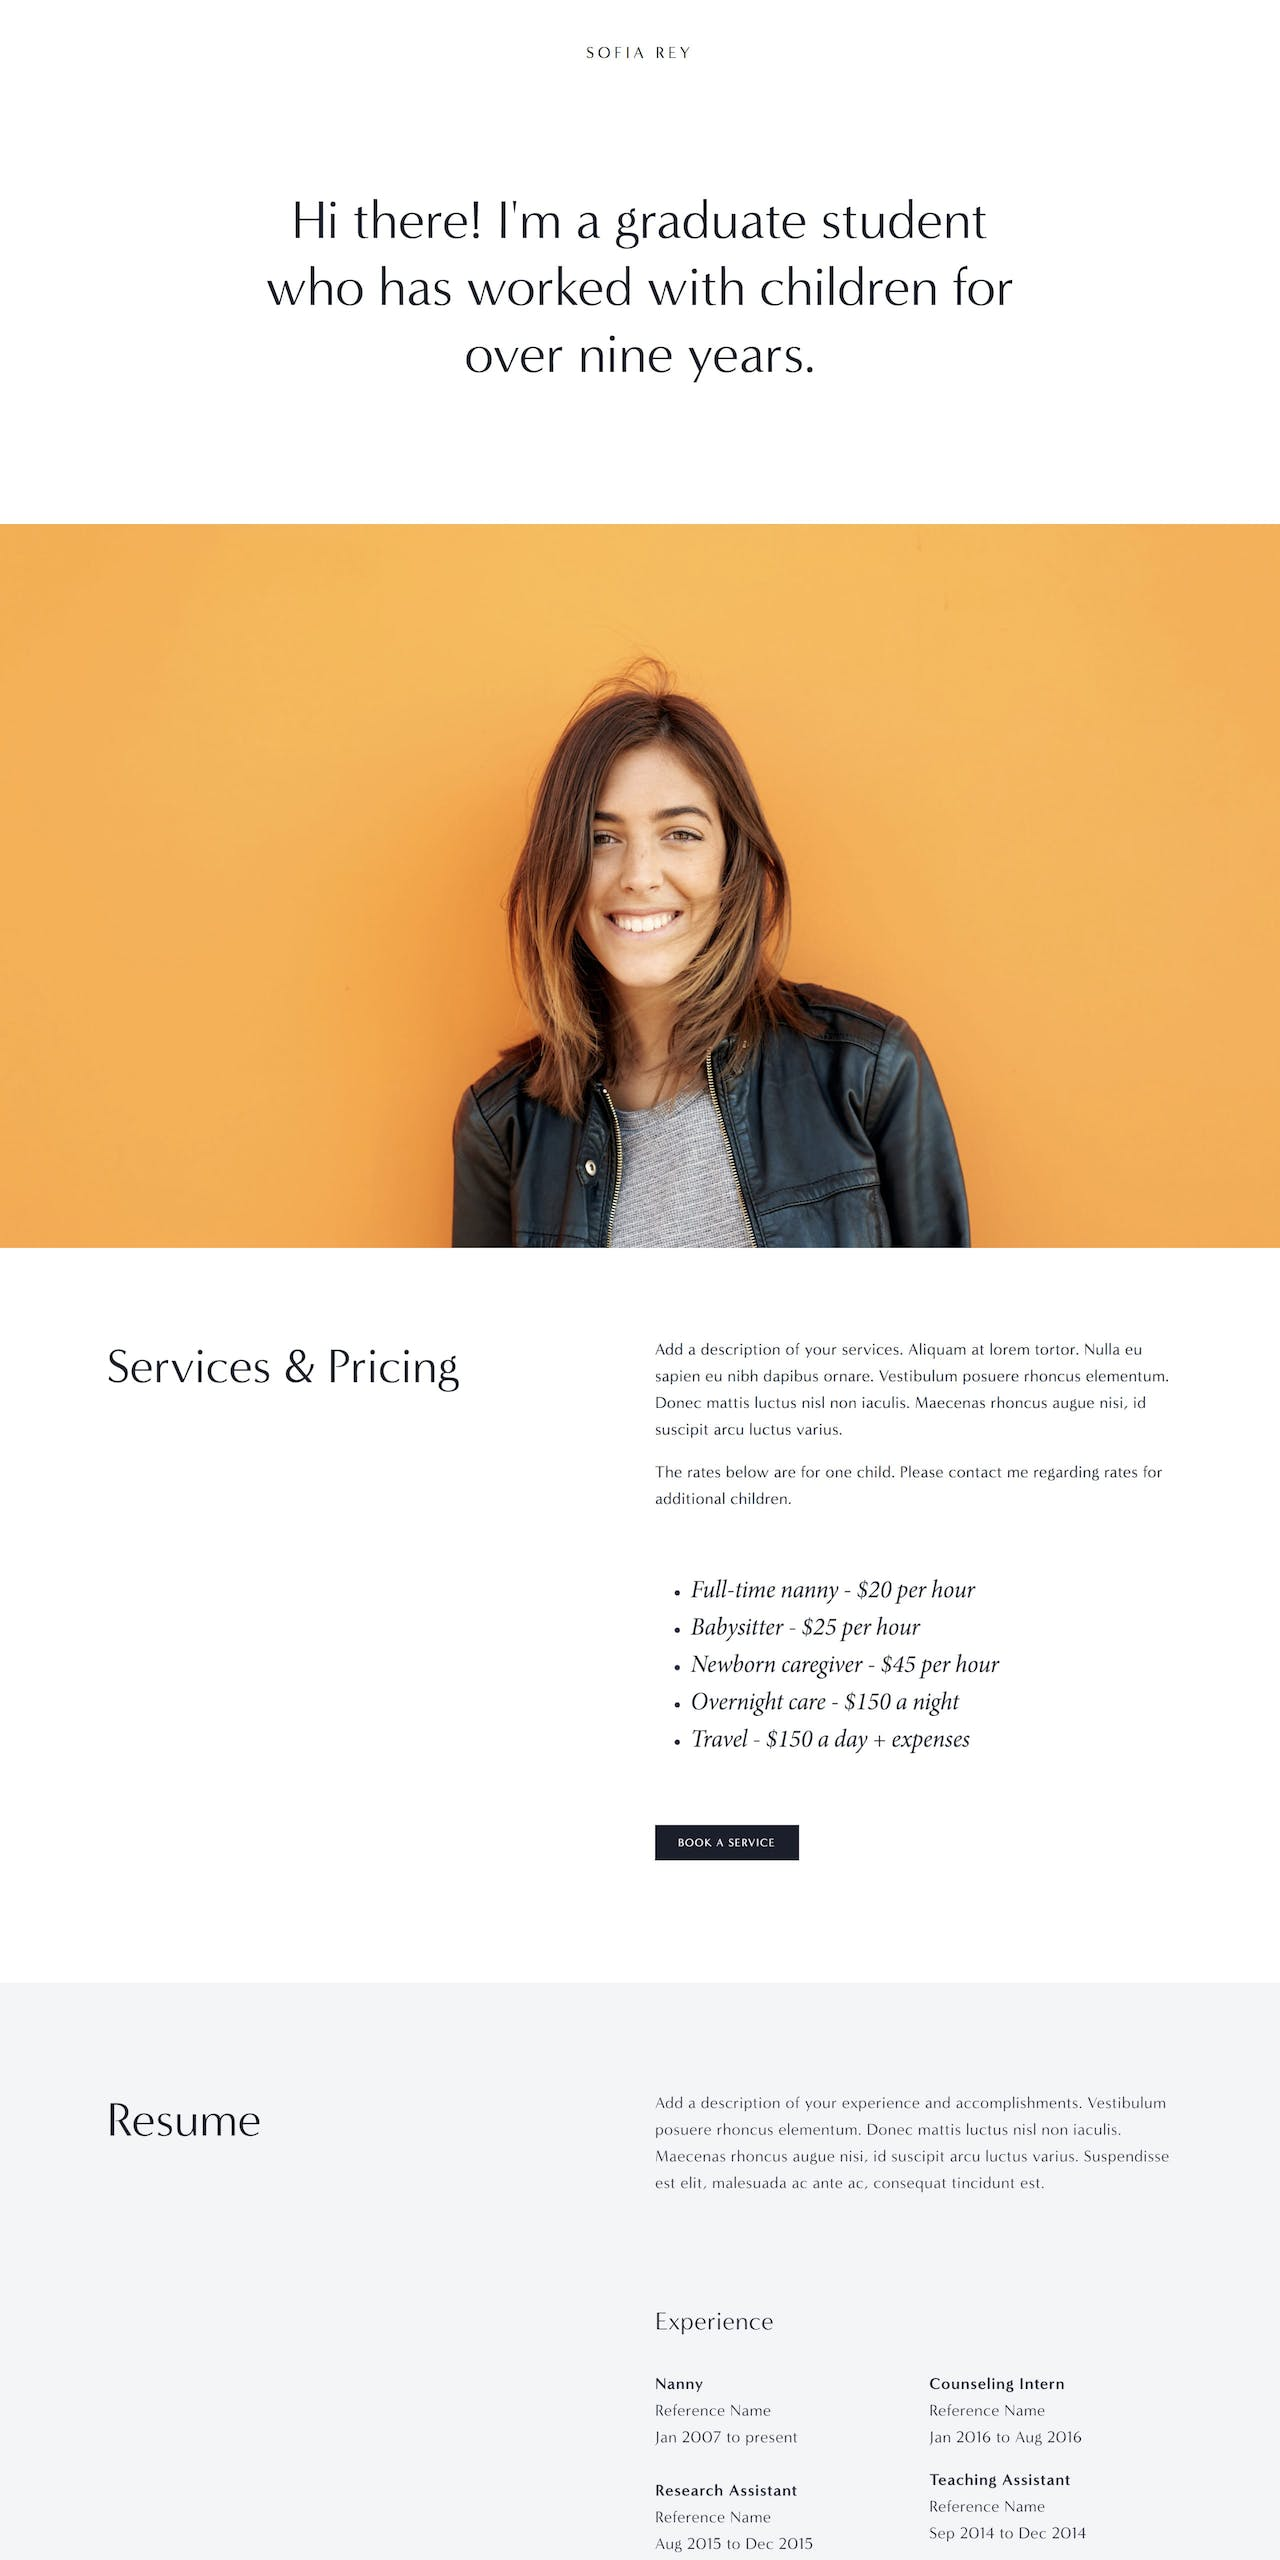 Sofia Squarespace Template Screenshot